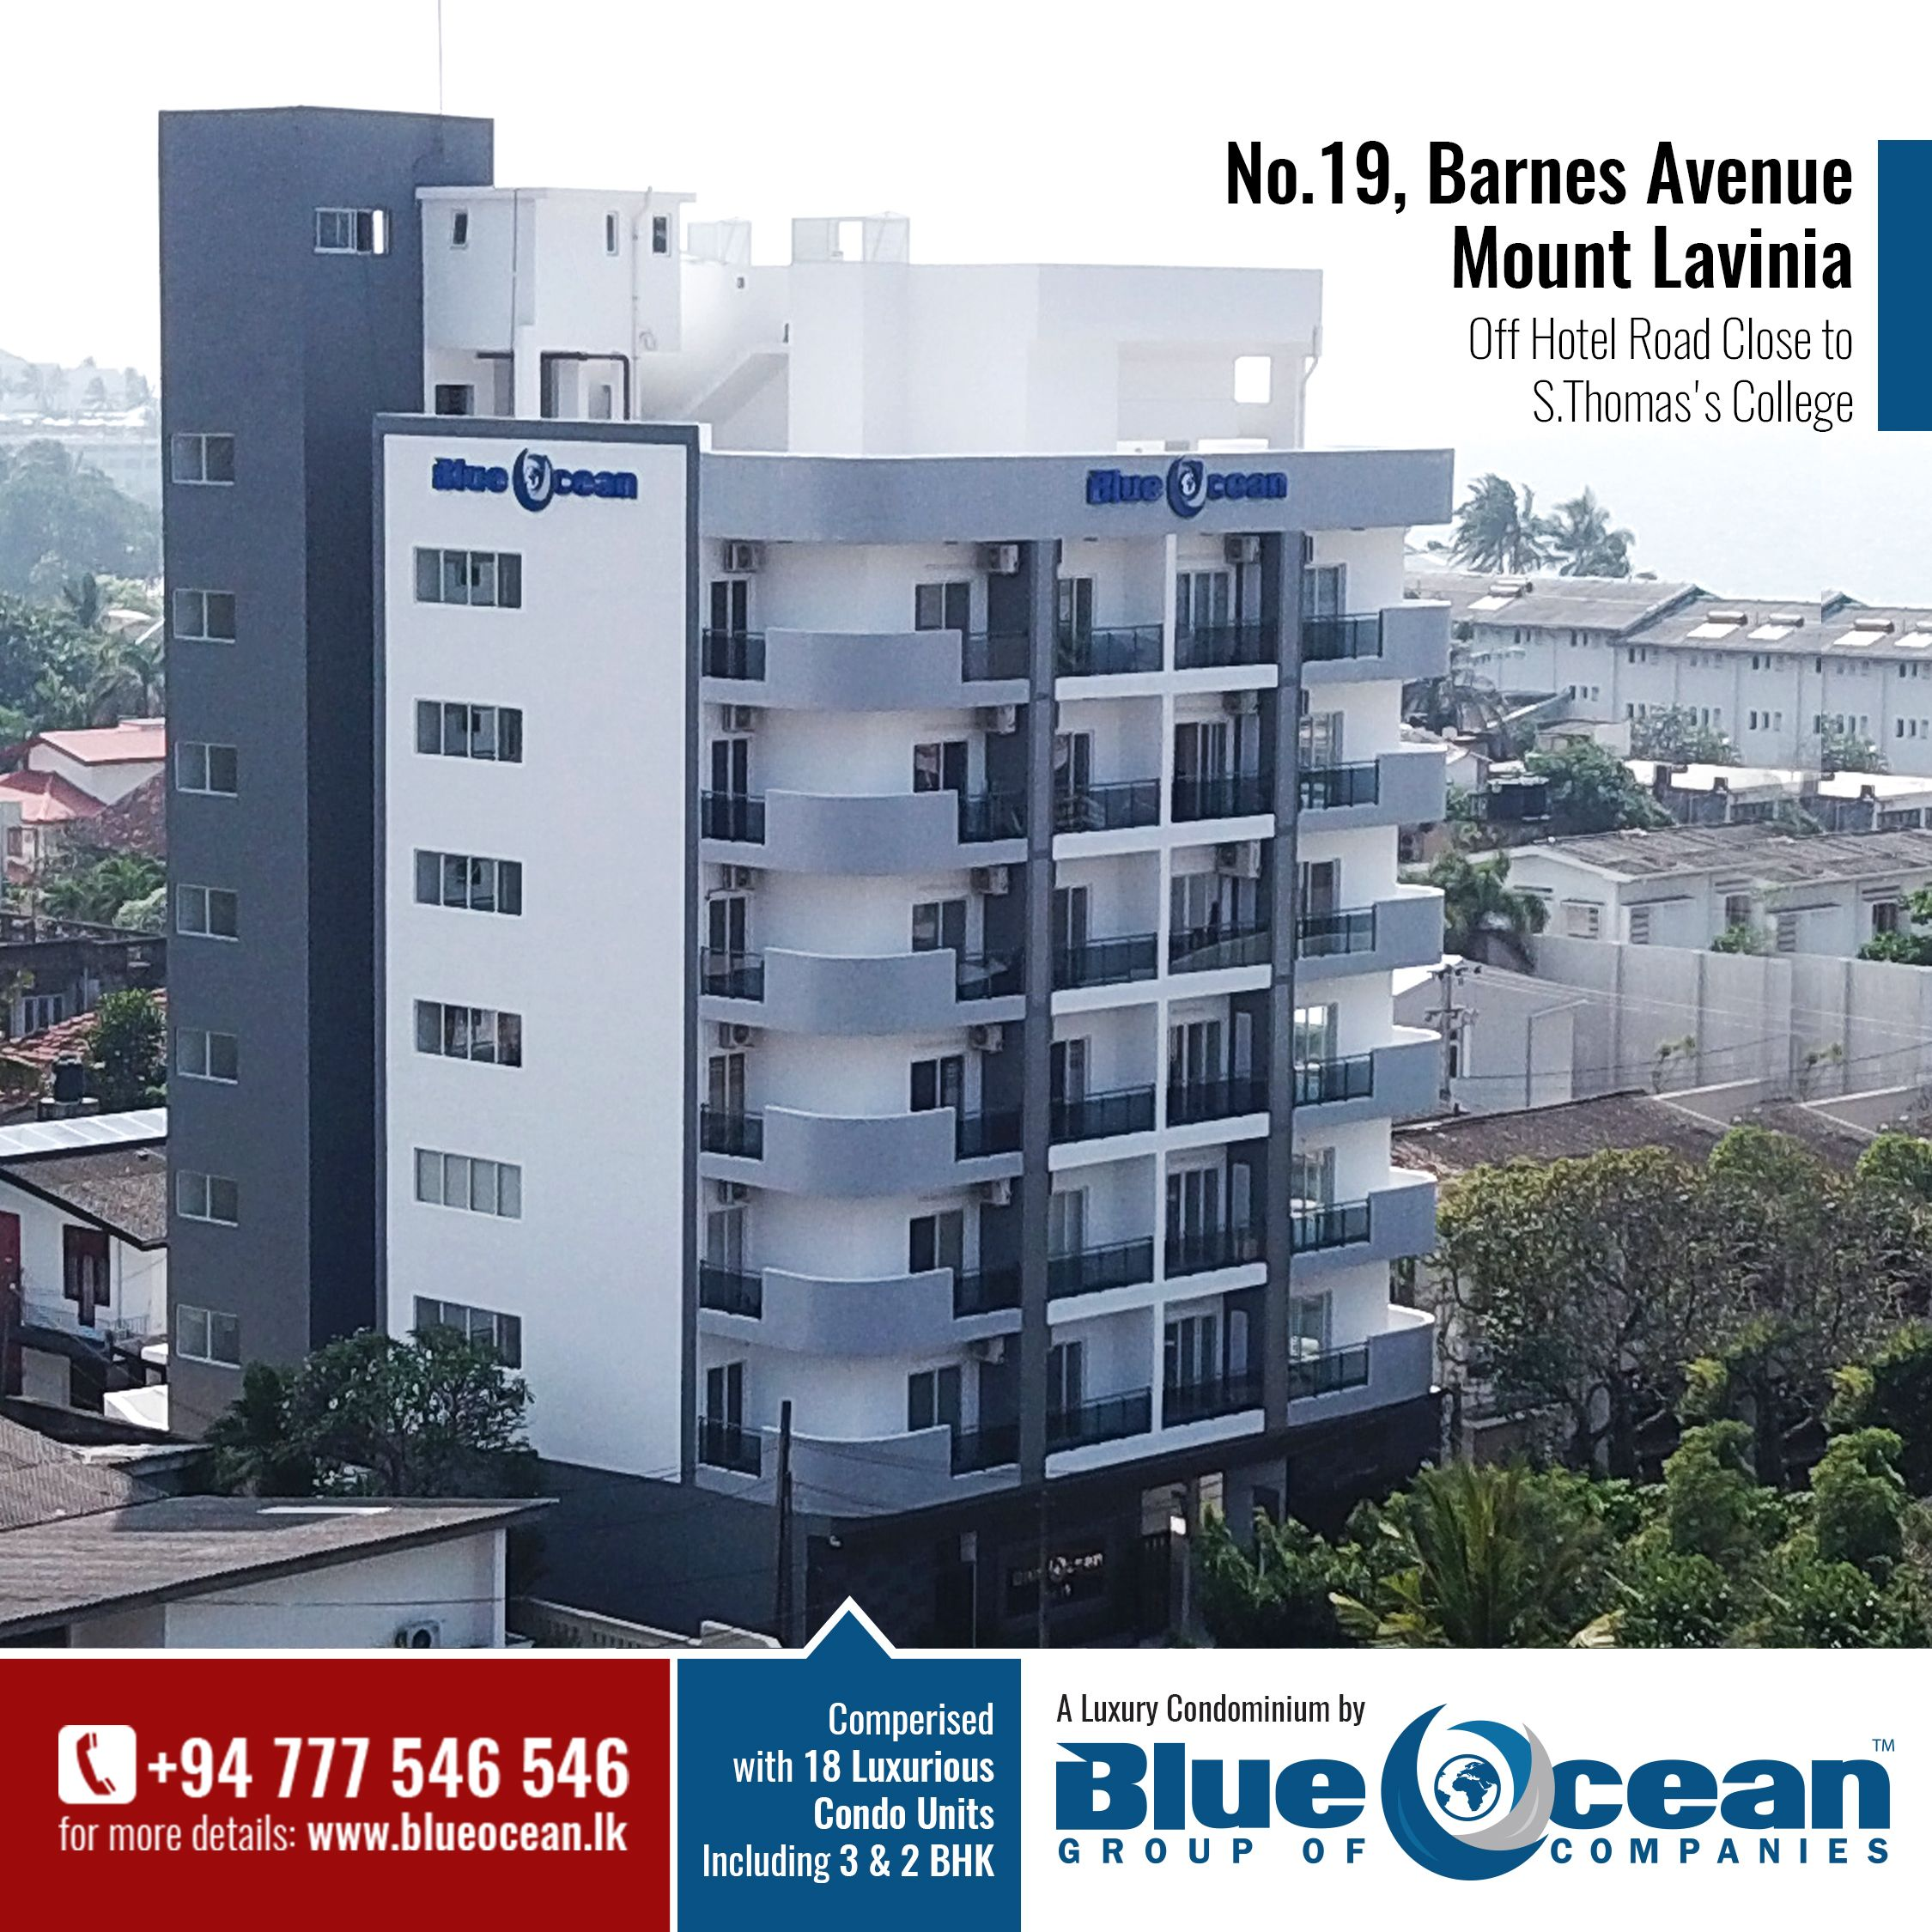 One of the Our Luxury Apartment Complexes from the Blue